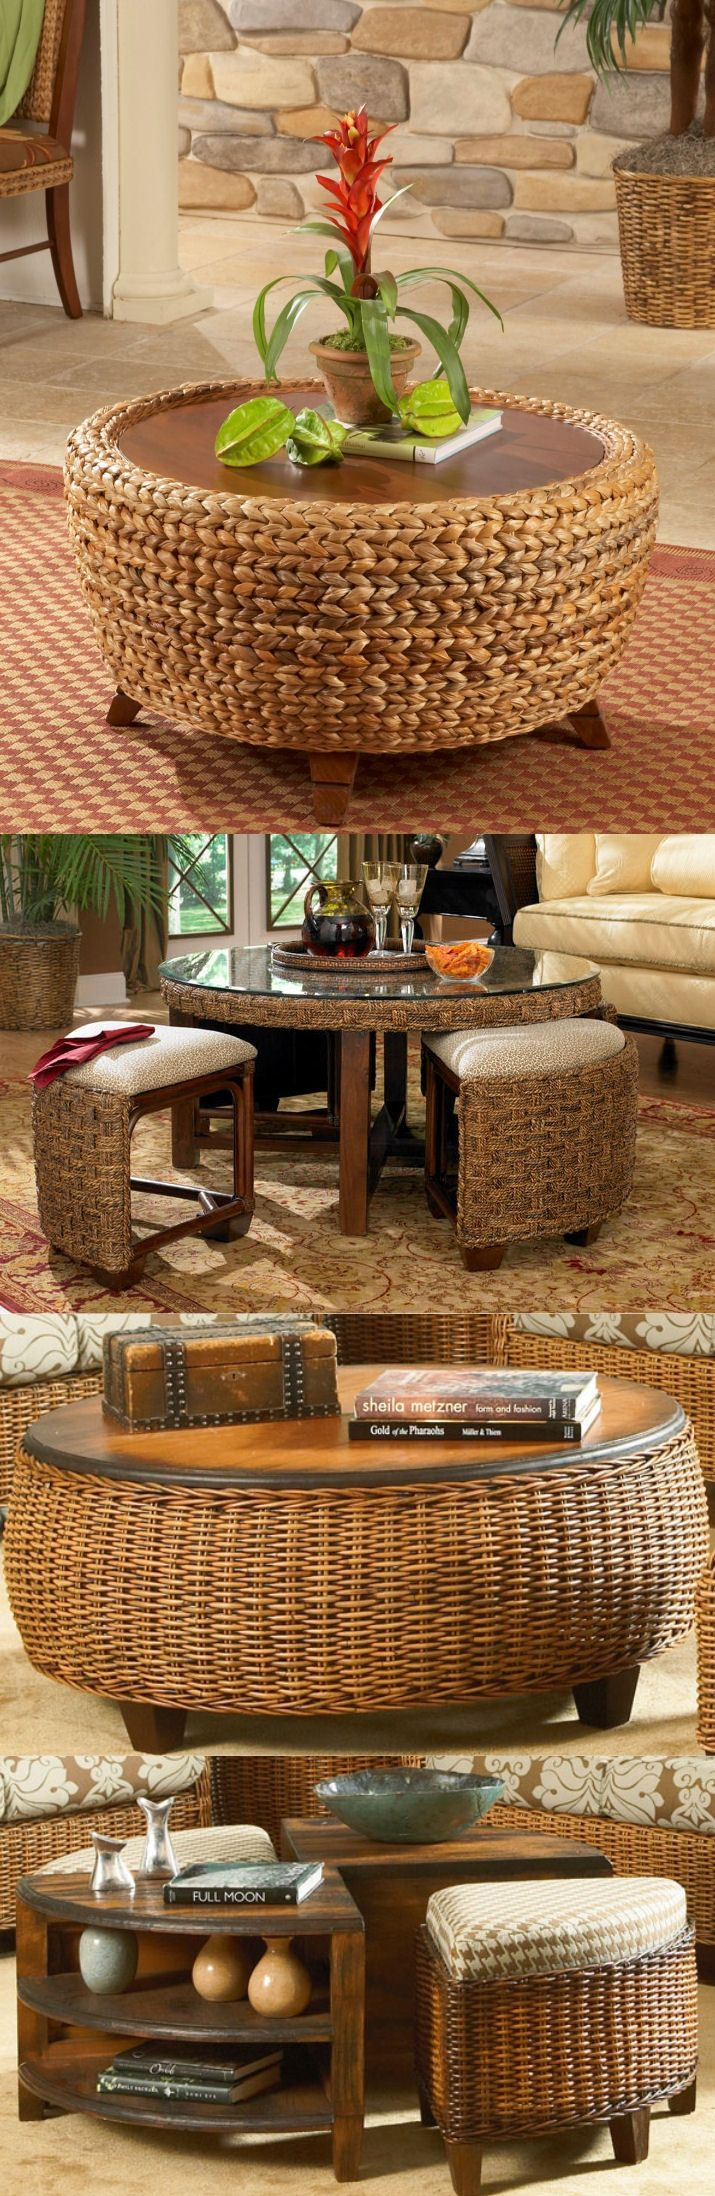 Round Wicker Coffee Tables. Tables With Stools Make Great Game Tables For  Family And Sunrooms